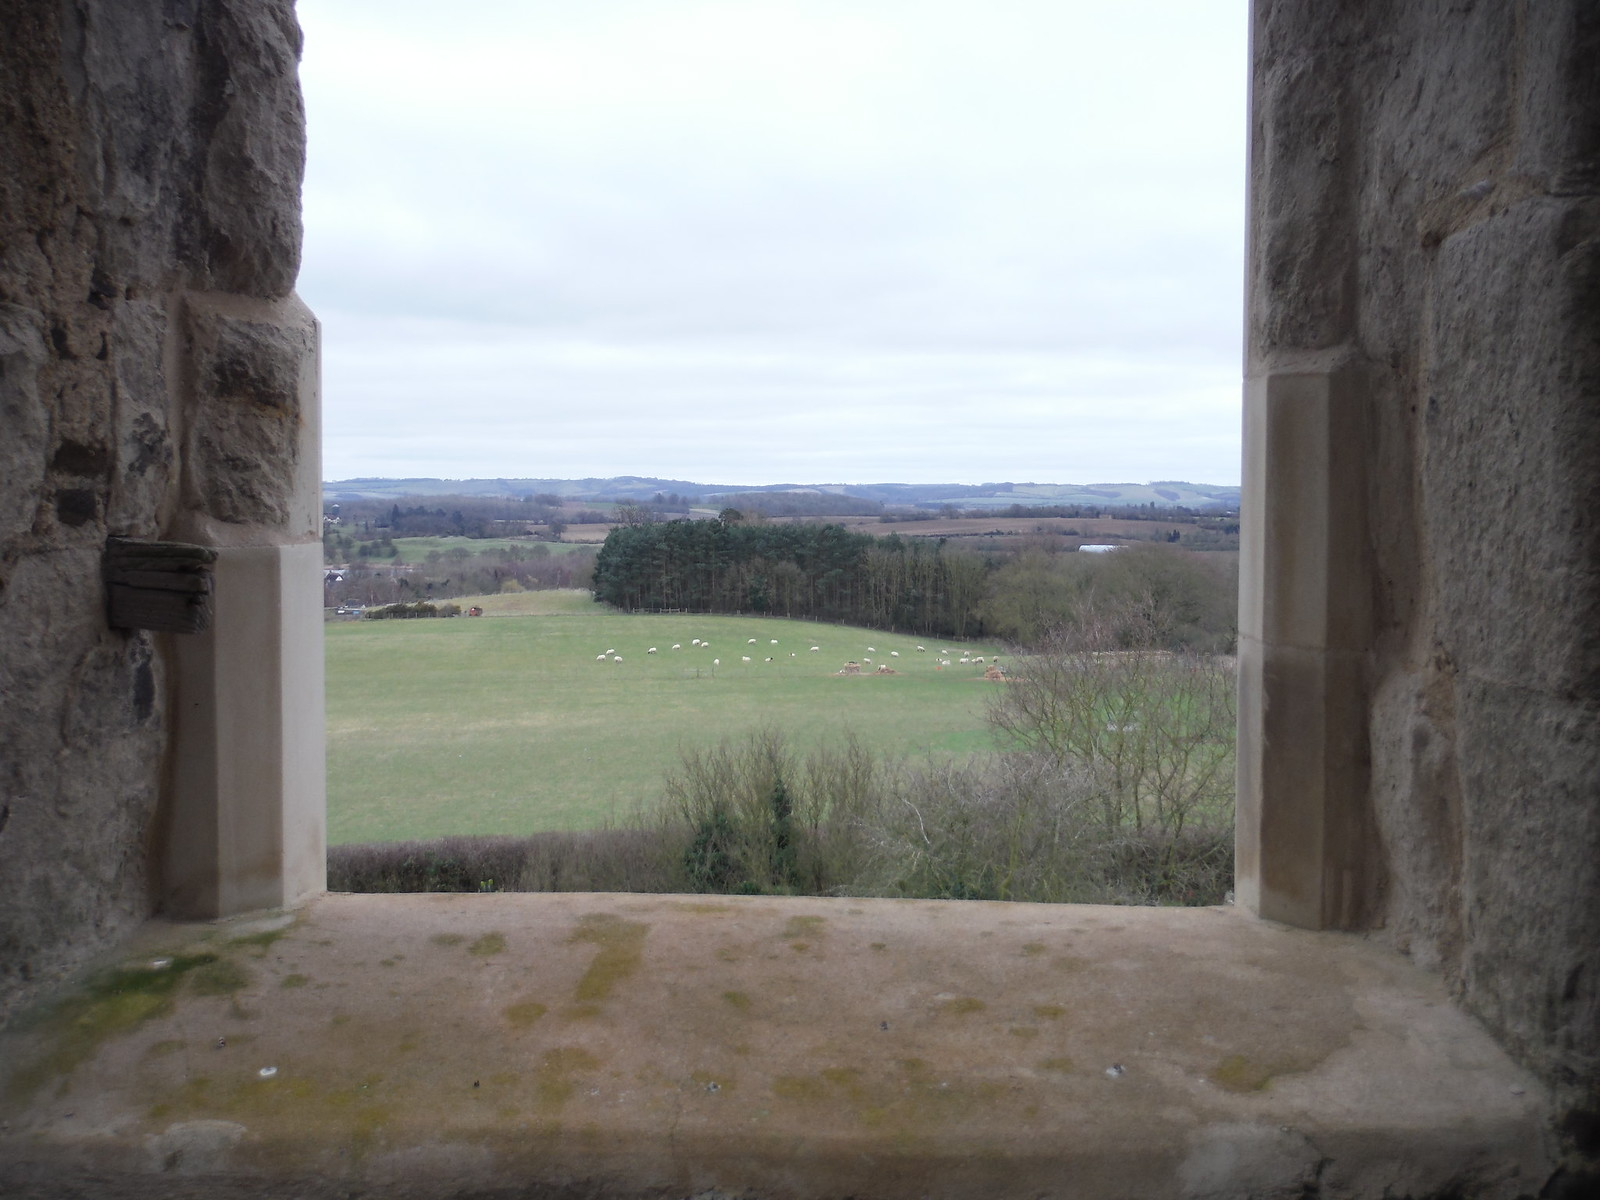 View through window of tower of Old St. Mary's Church, Clophill SWC Walk 231 Flitwick Circular